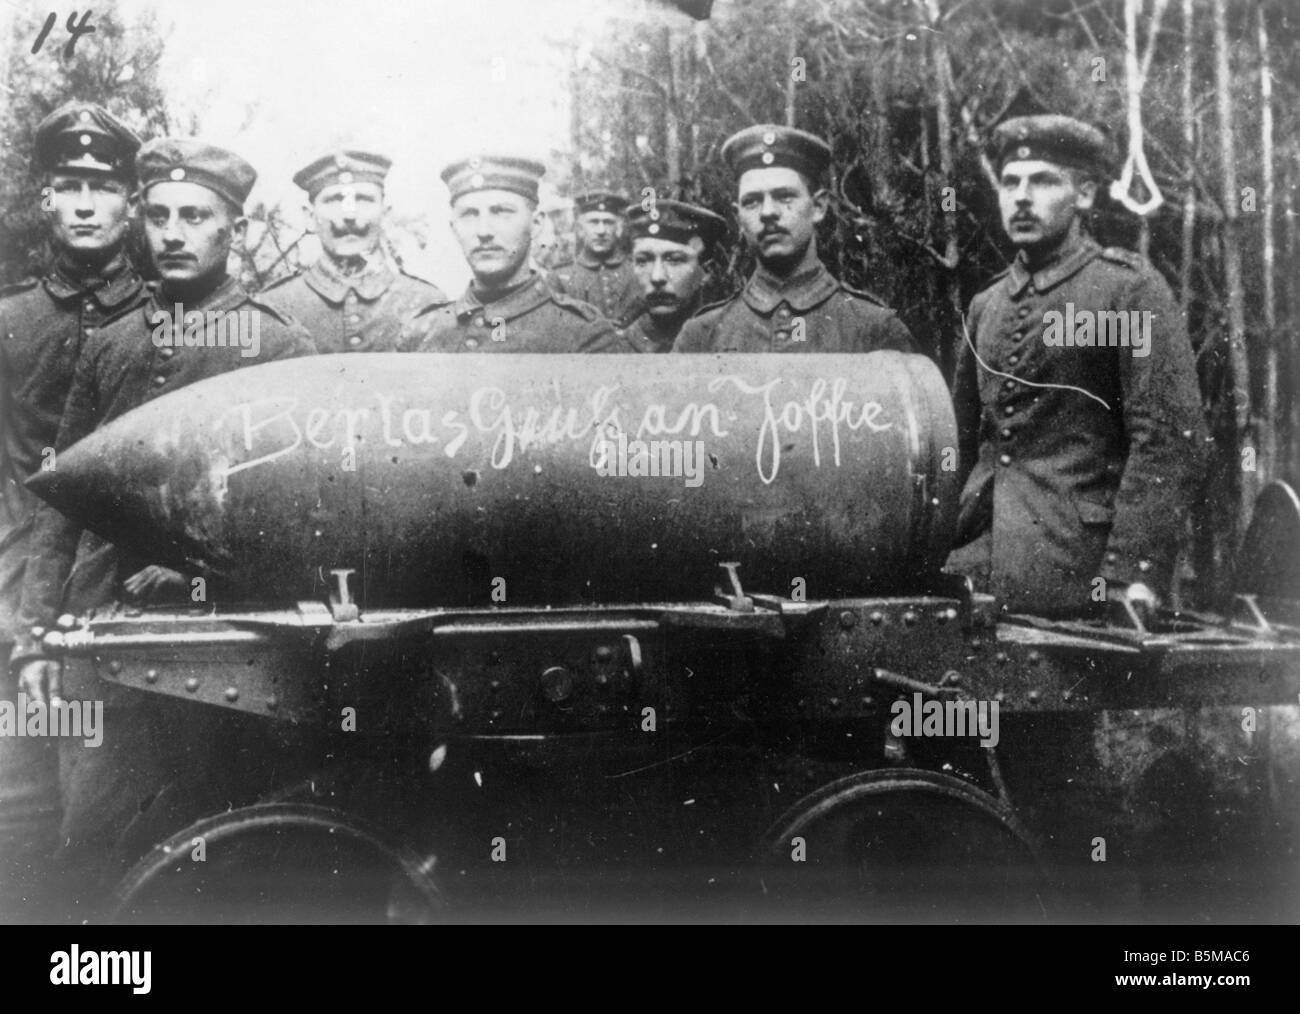 2 G55 W1 1916 30 WWI Ger artillery troops with shell 1916 History World War I Western Front German artillery troops - Stock Image